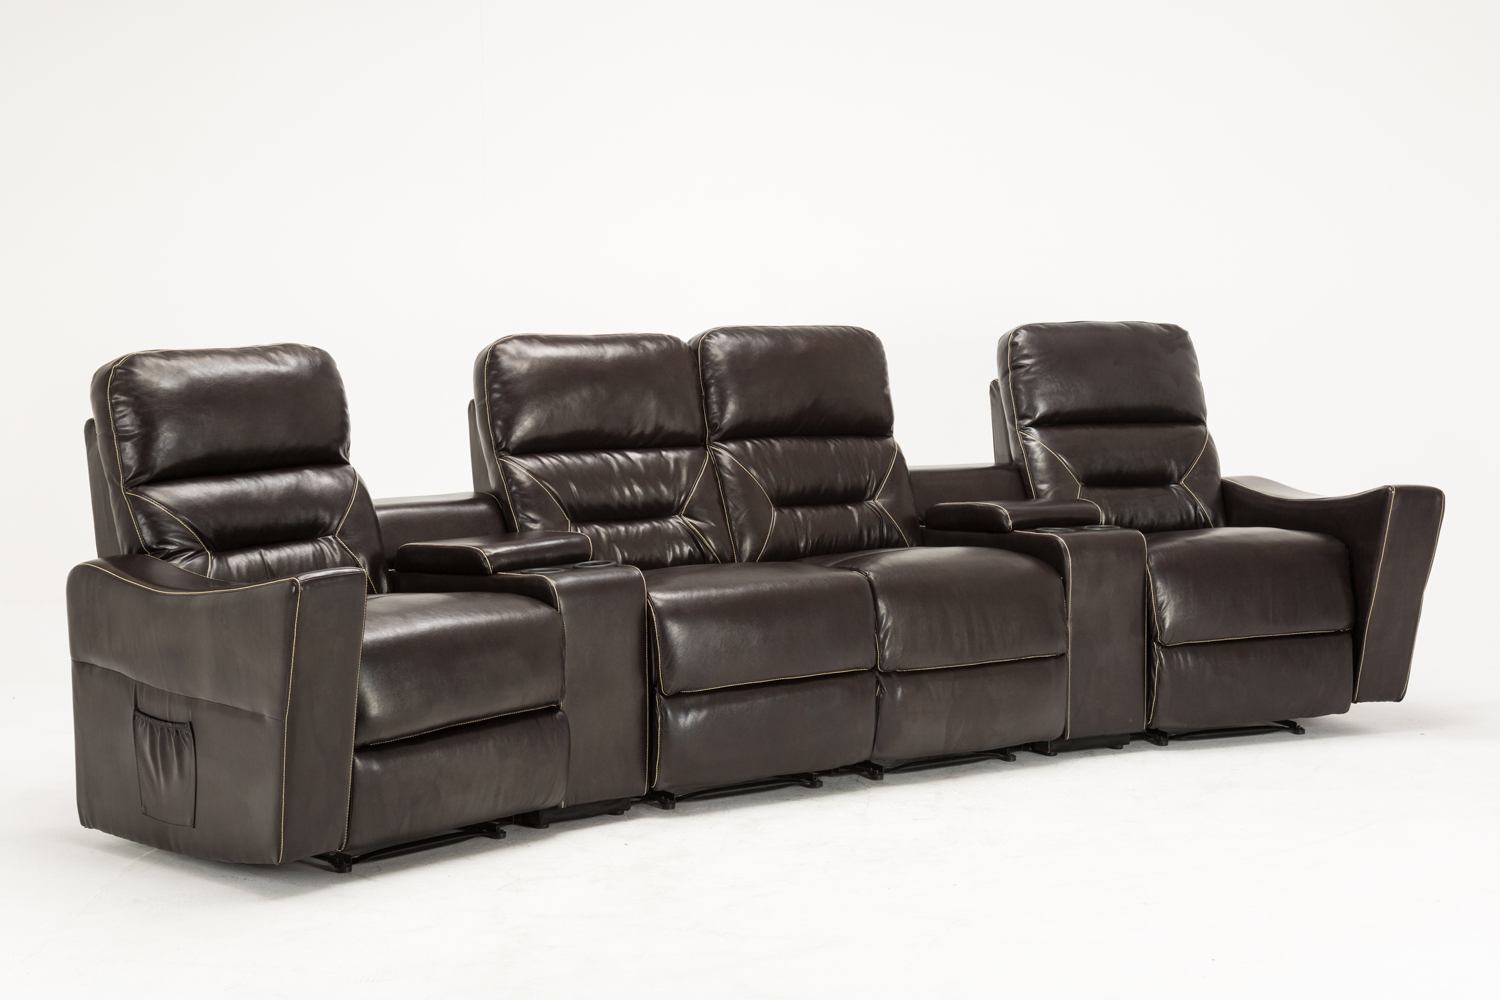 4 seat leather reclining sofa thesofa for Sectional sofas with 4 recliners